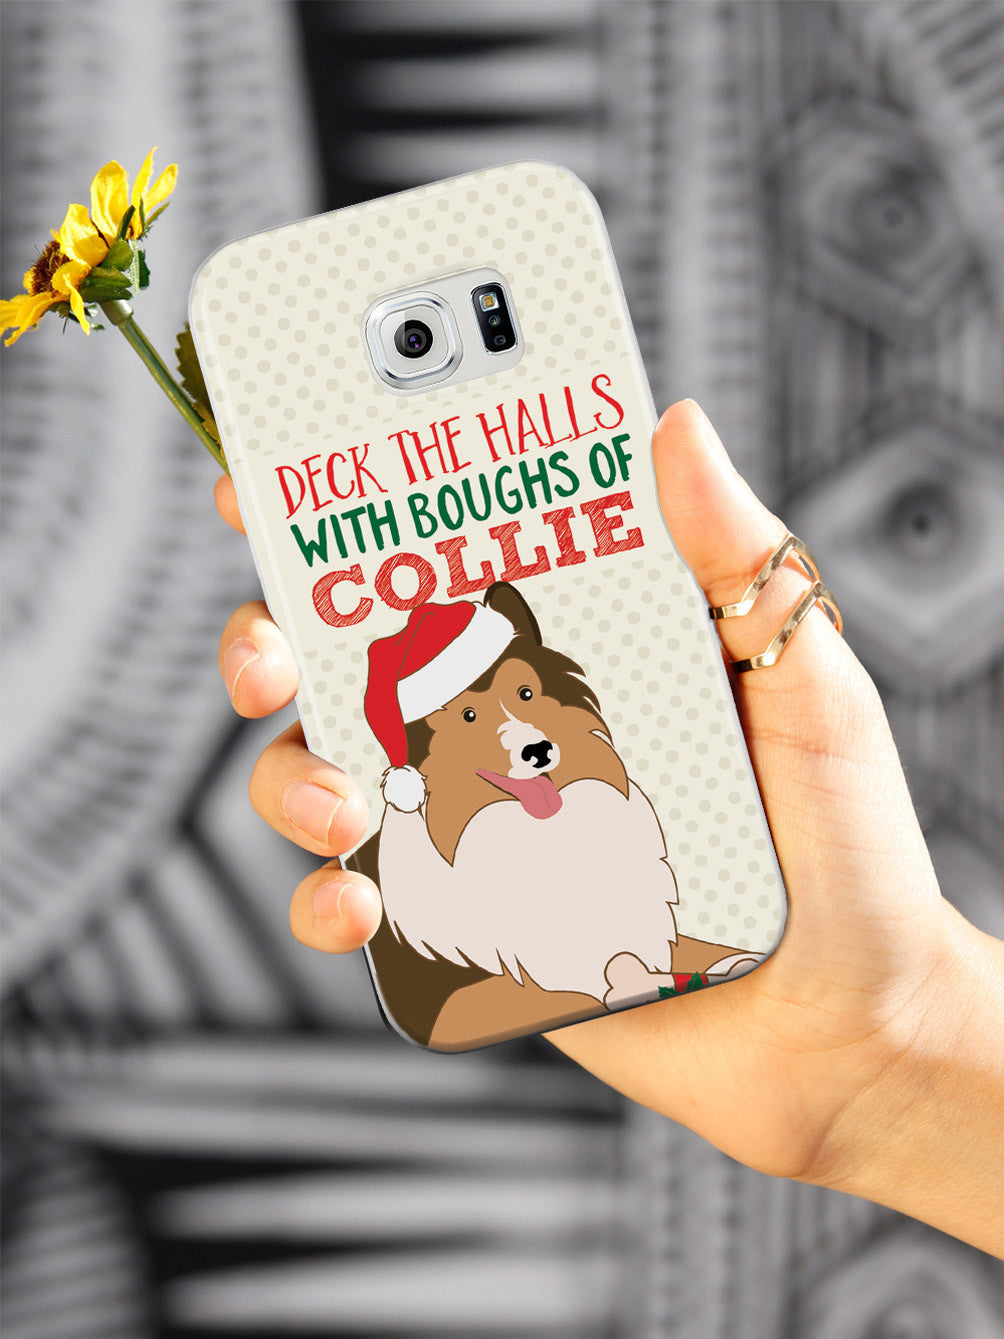 Deck The Halls With Boughs of Collie - Christmas Case